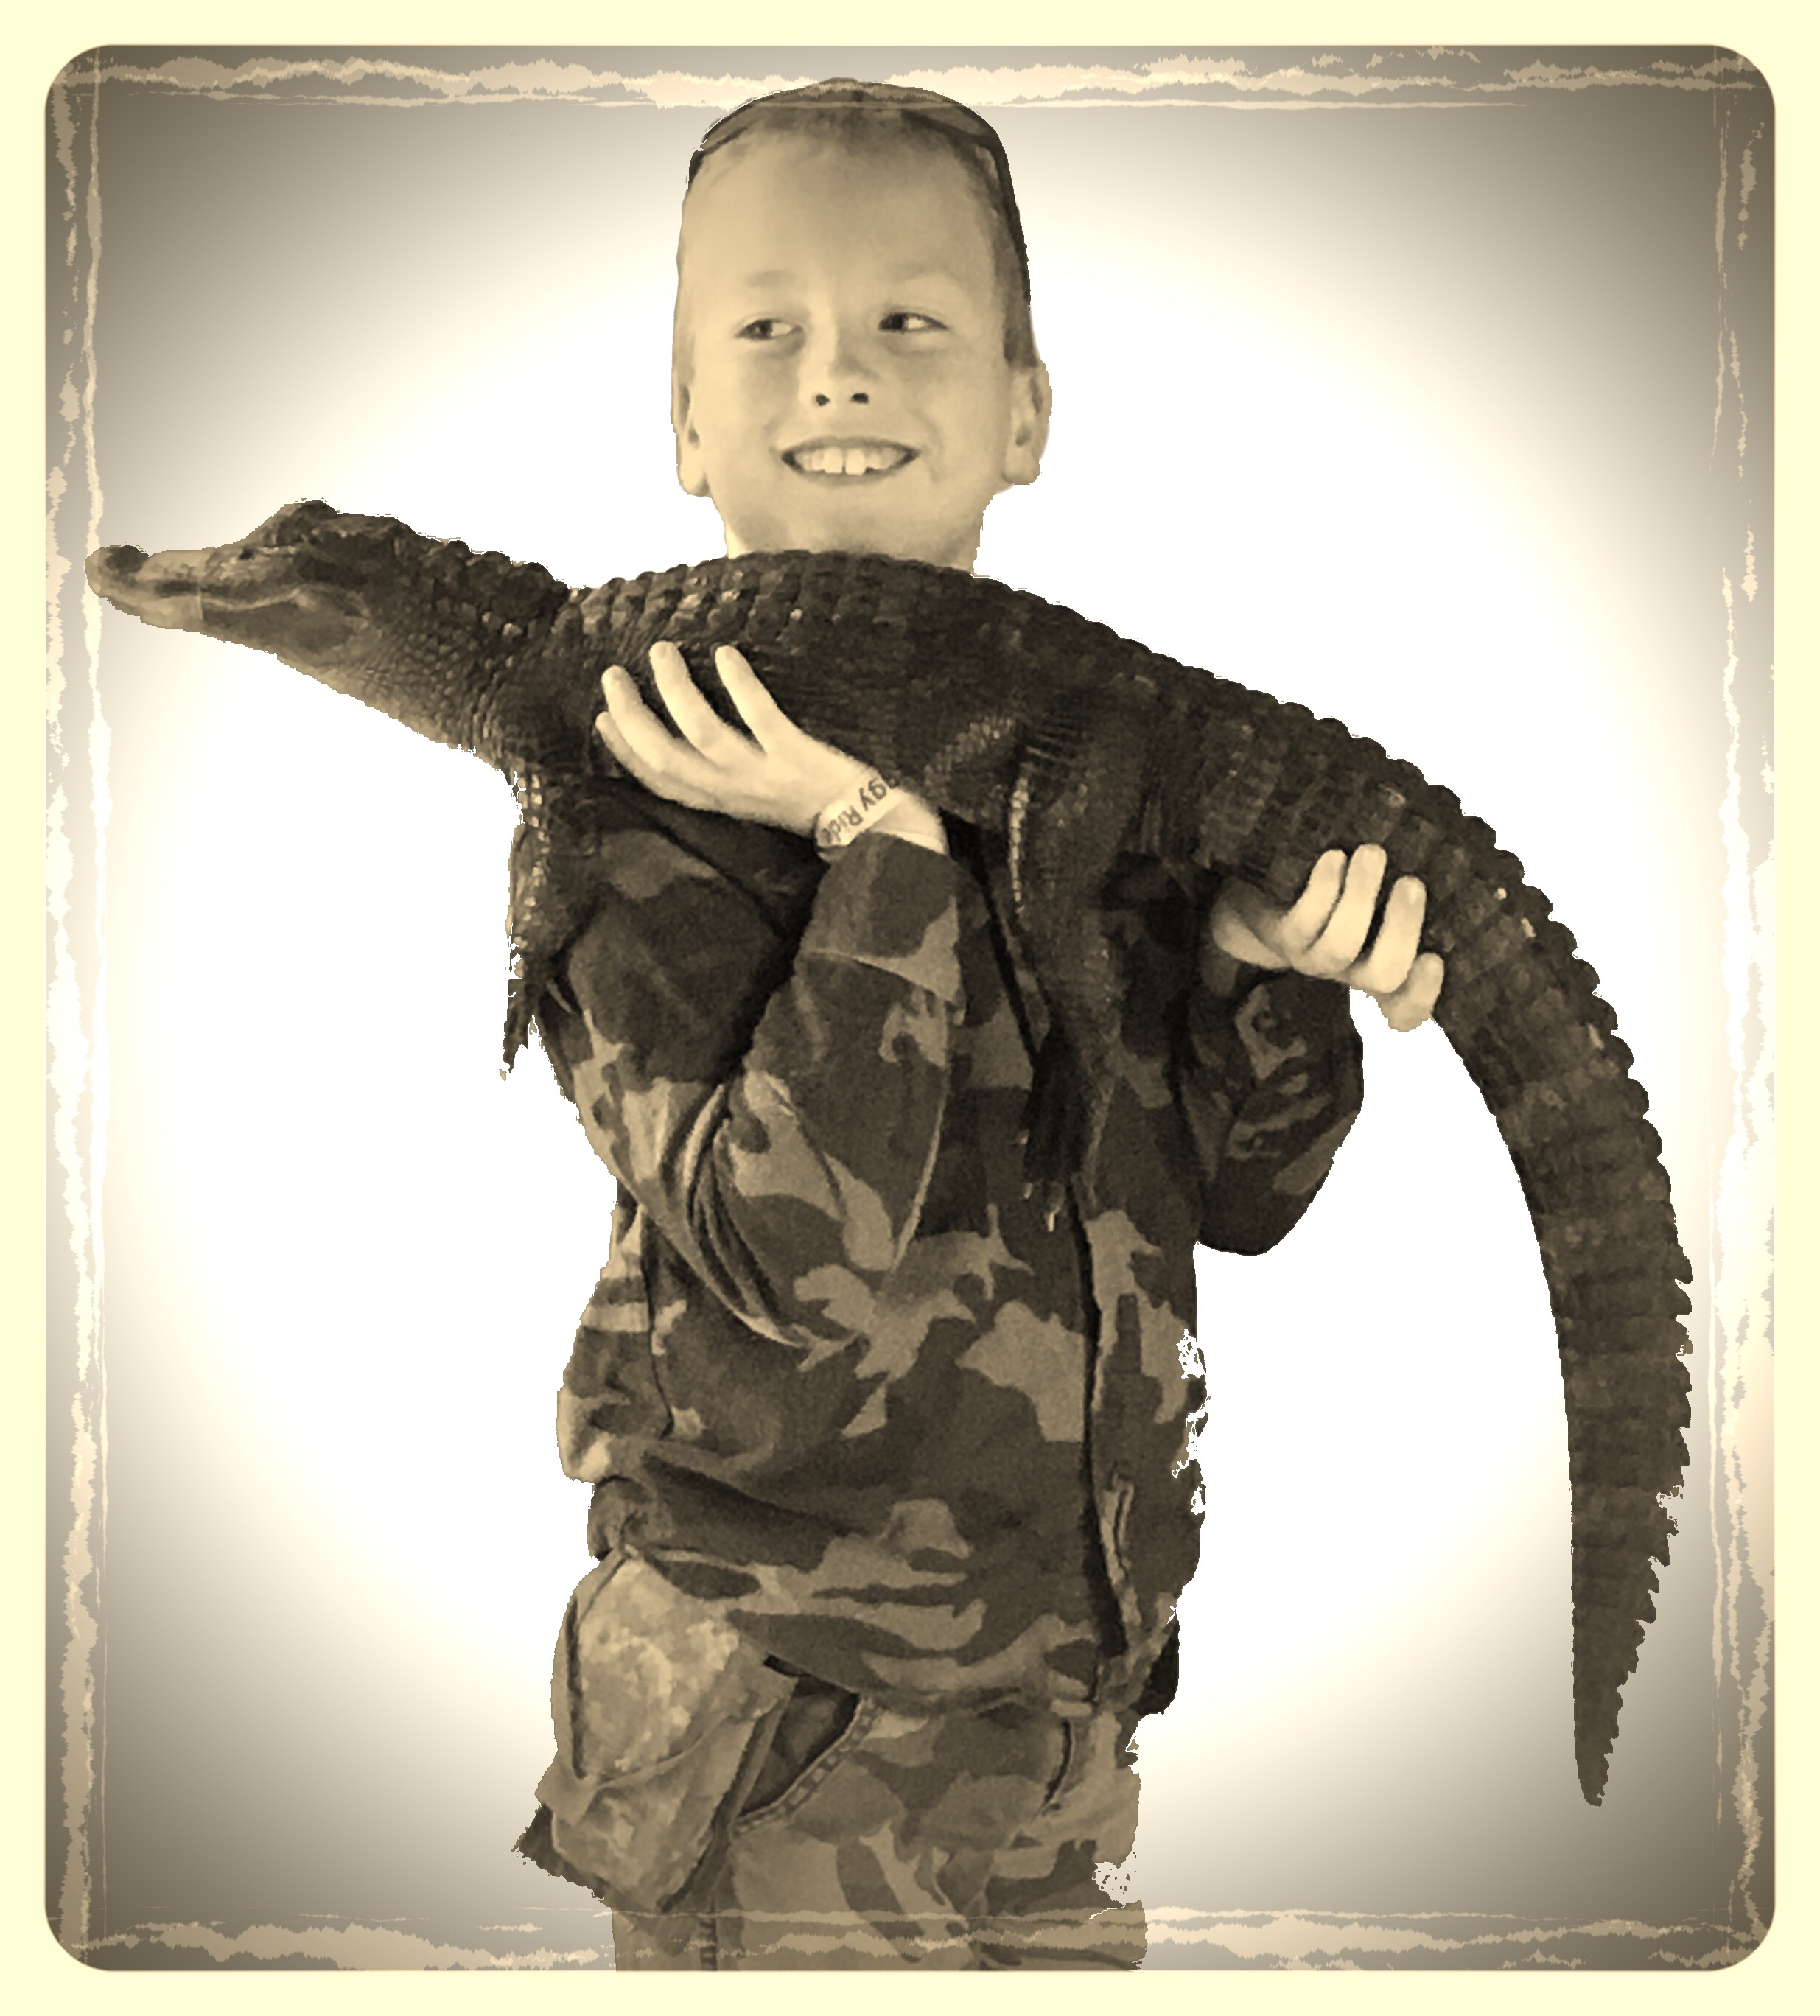 Daniel holding a gator at Wild Florida. Photo by Kelly Green